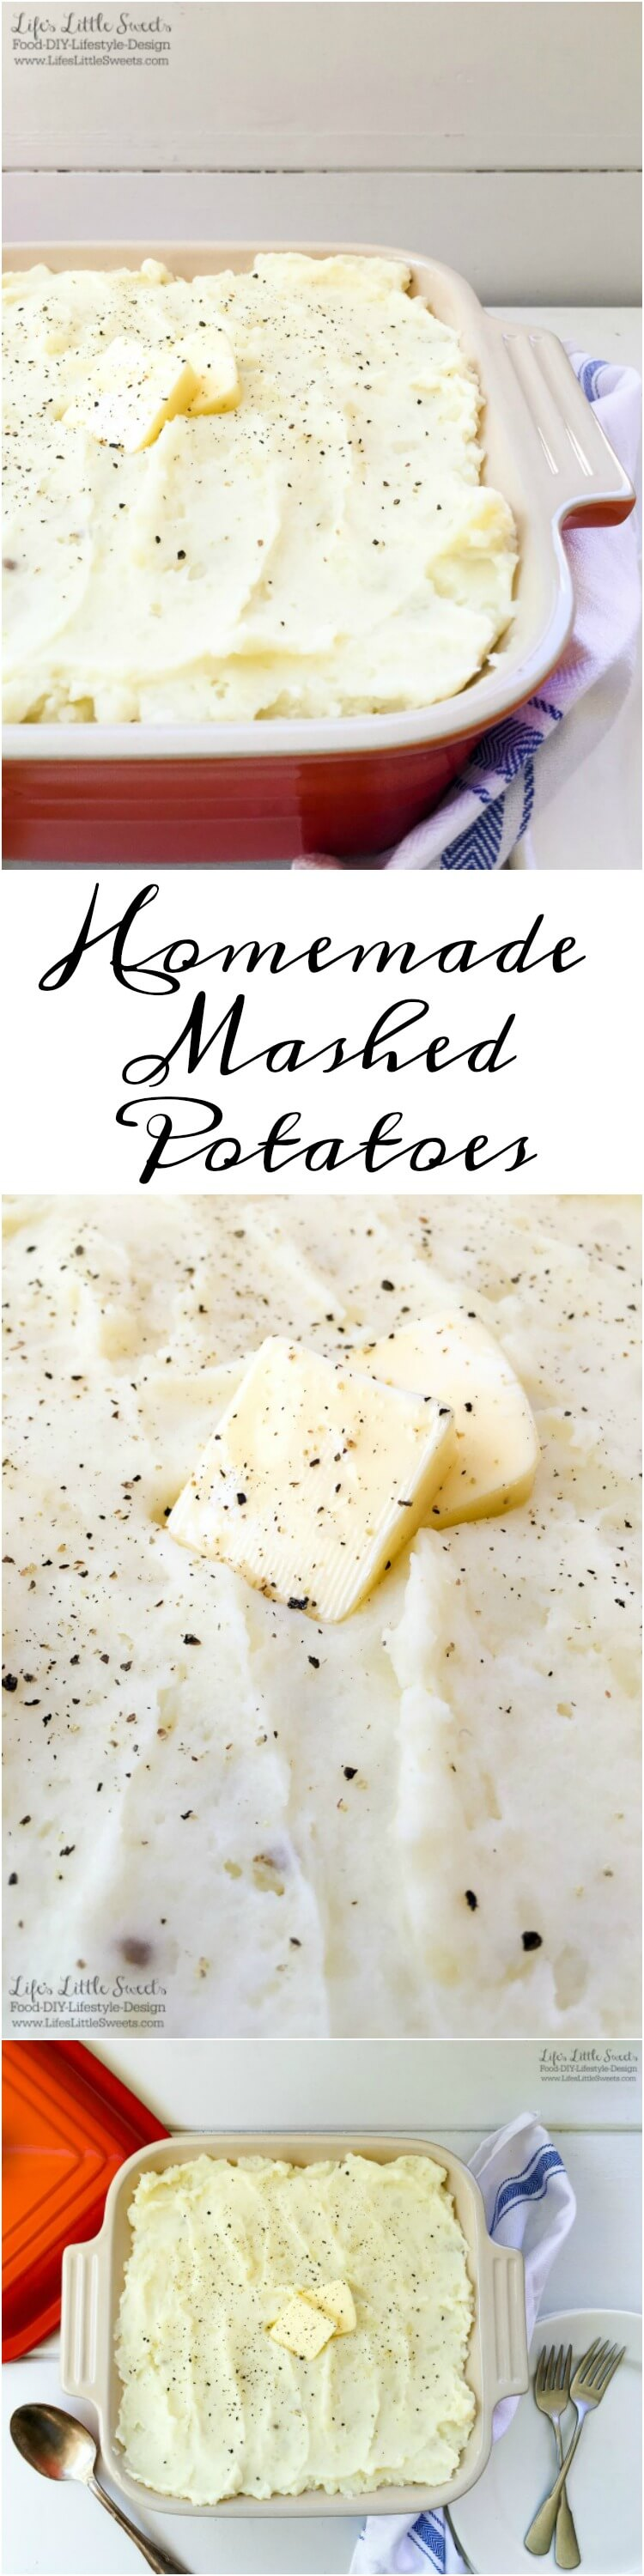 This Homemade Mashed Potatoes recipe uses a 5-pound bag of white potatoes, milk, butter salt and pepper. With only 5-ingredients, they are so simple to make and a classic, savory, side dish to a holiday dinner or any meal.